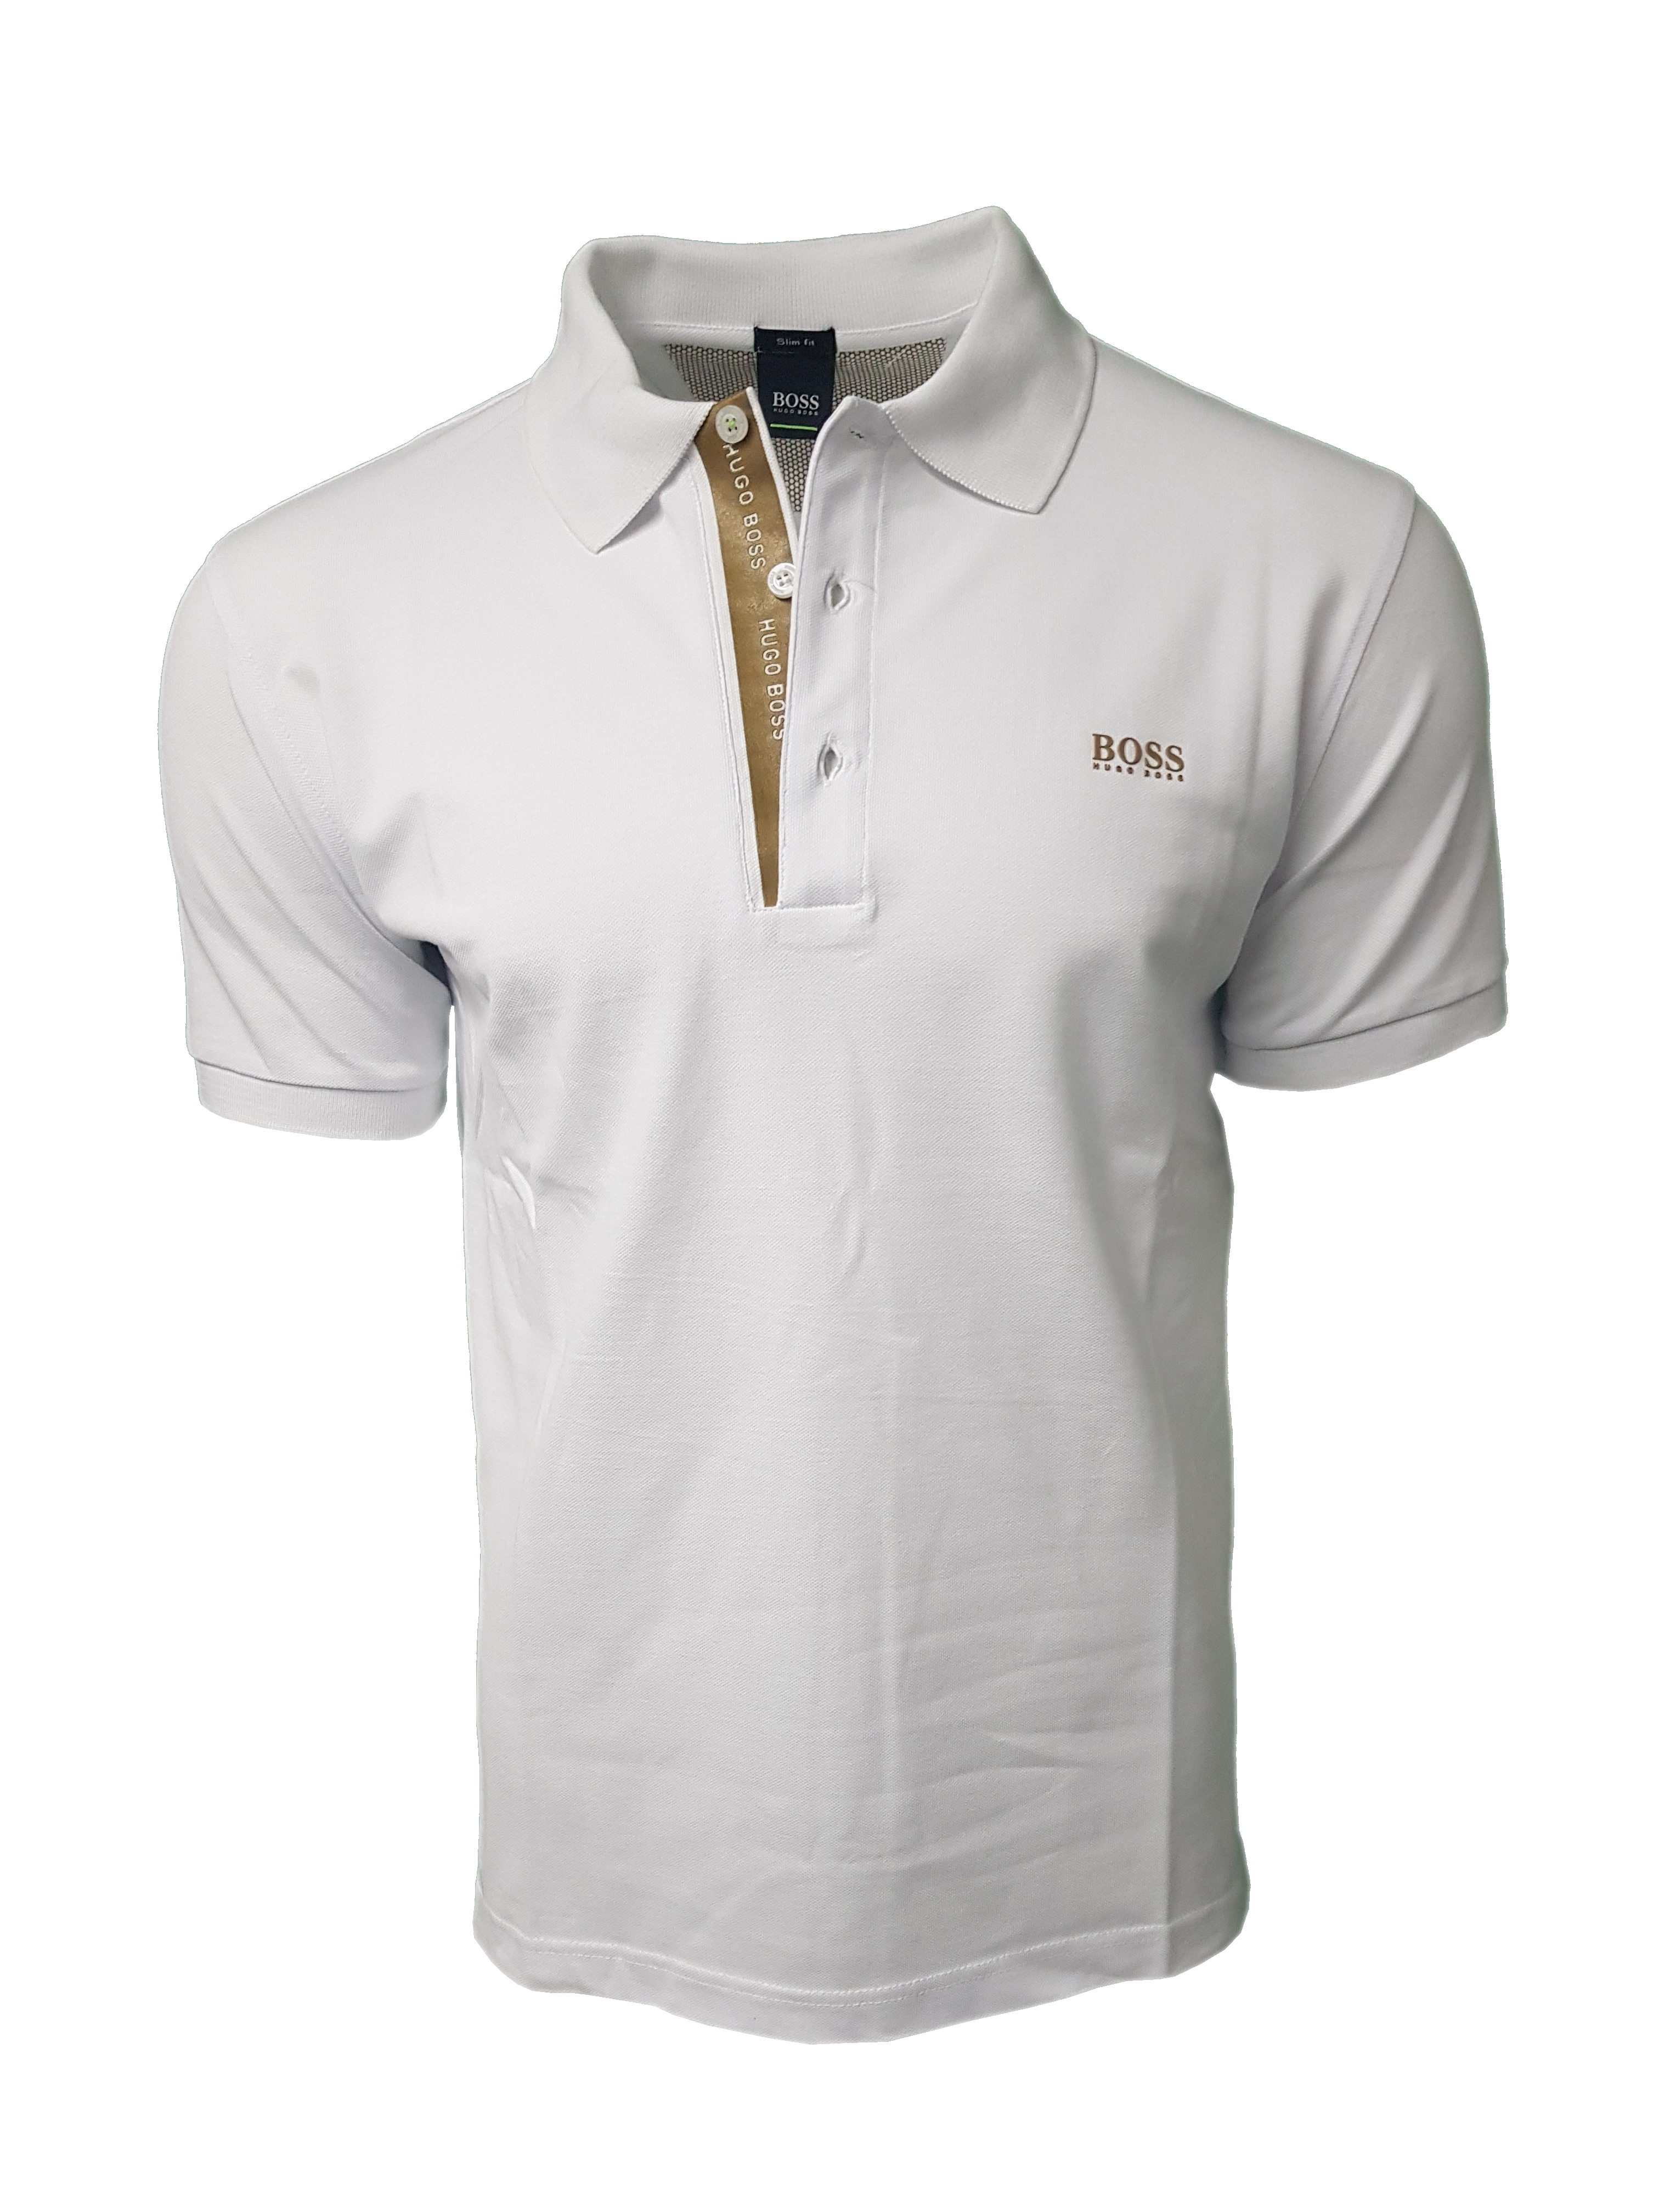 67a30c9f Hugo Boss Polo Shirt. Short Sleeve with Golden Placket in White ...